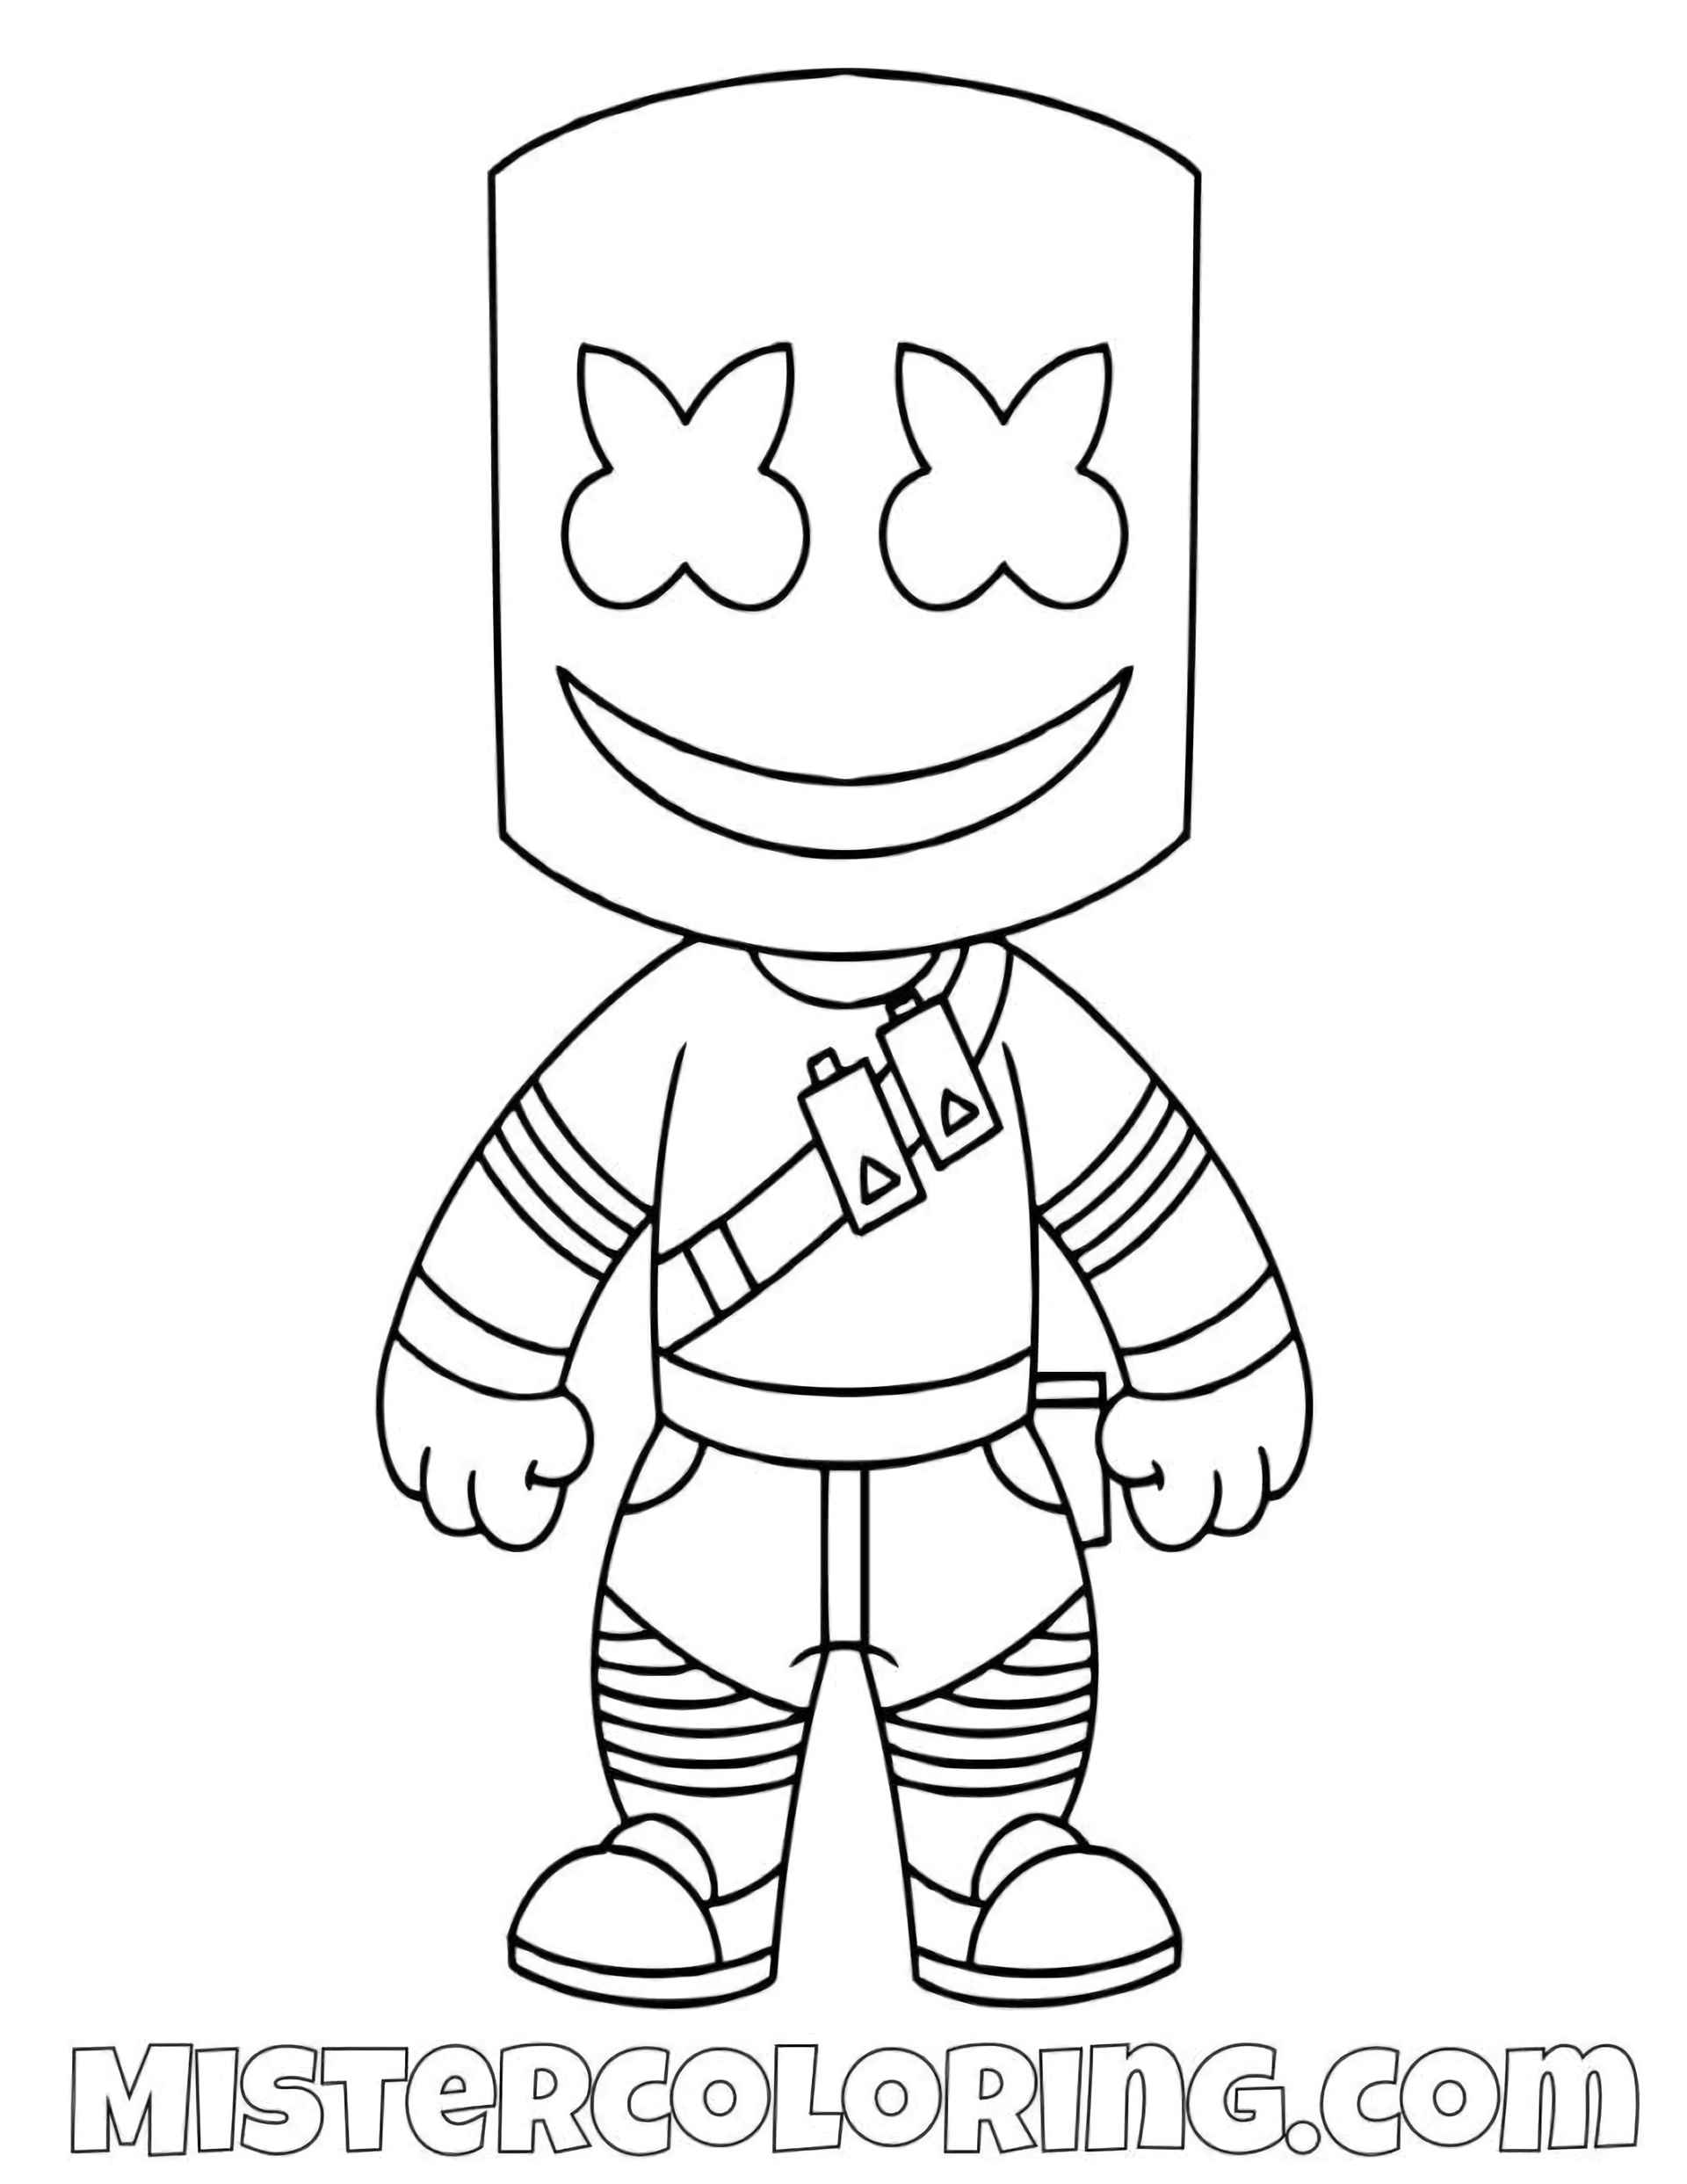 Marshmello Chibi Skin From The Game Fortnite Coloring Page